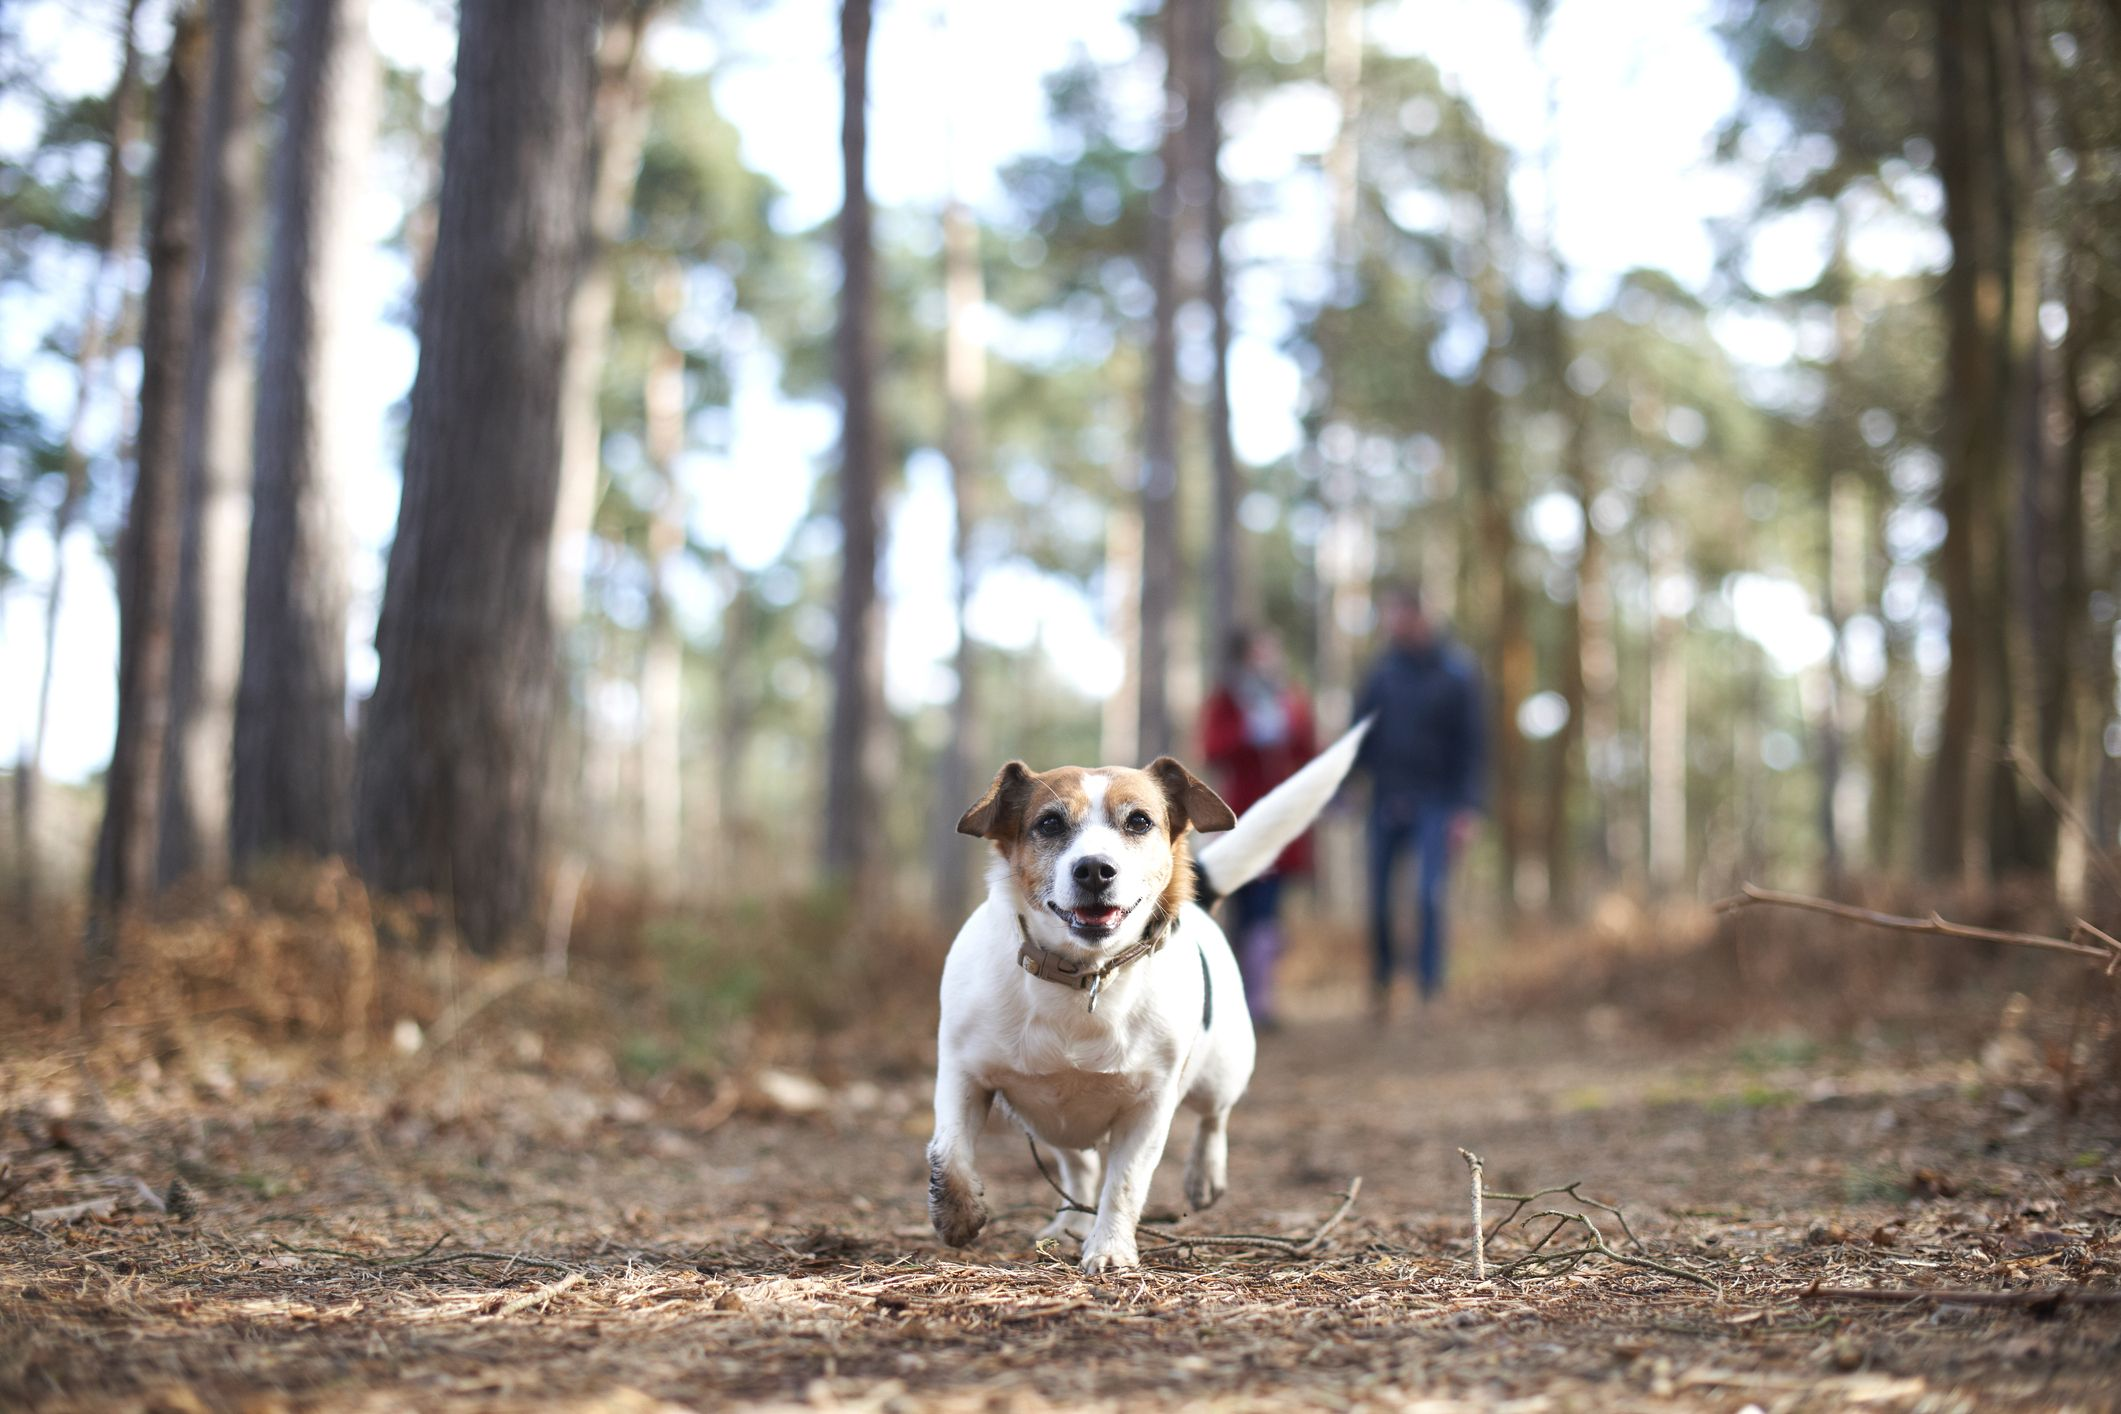 The National Trust promote responsible dog ownership with 5 countryside rules